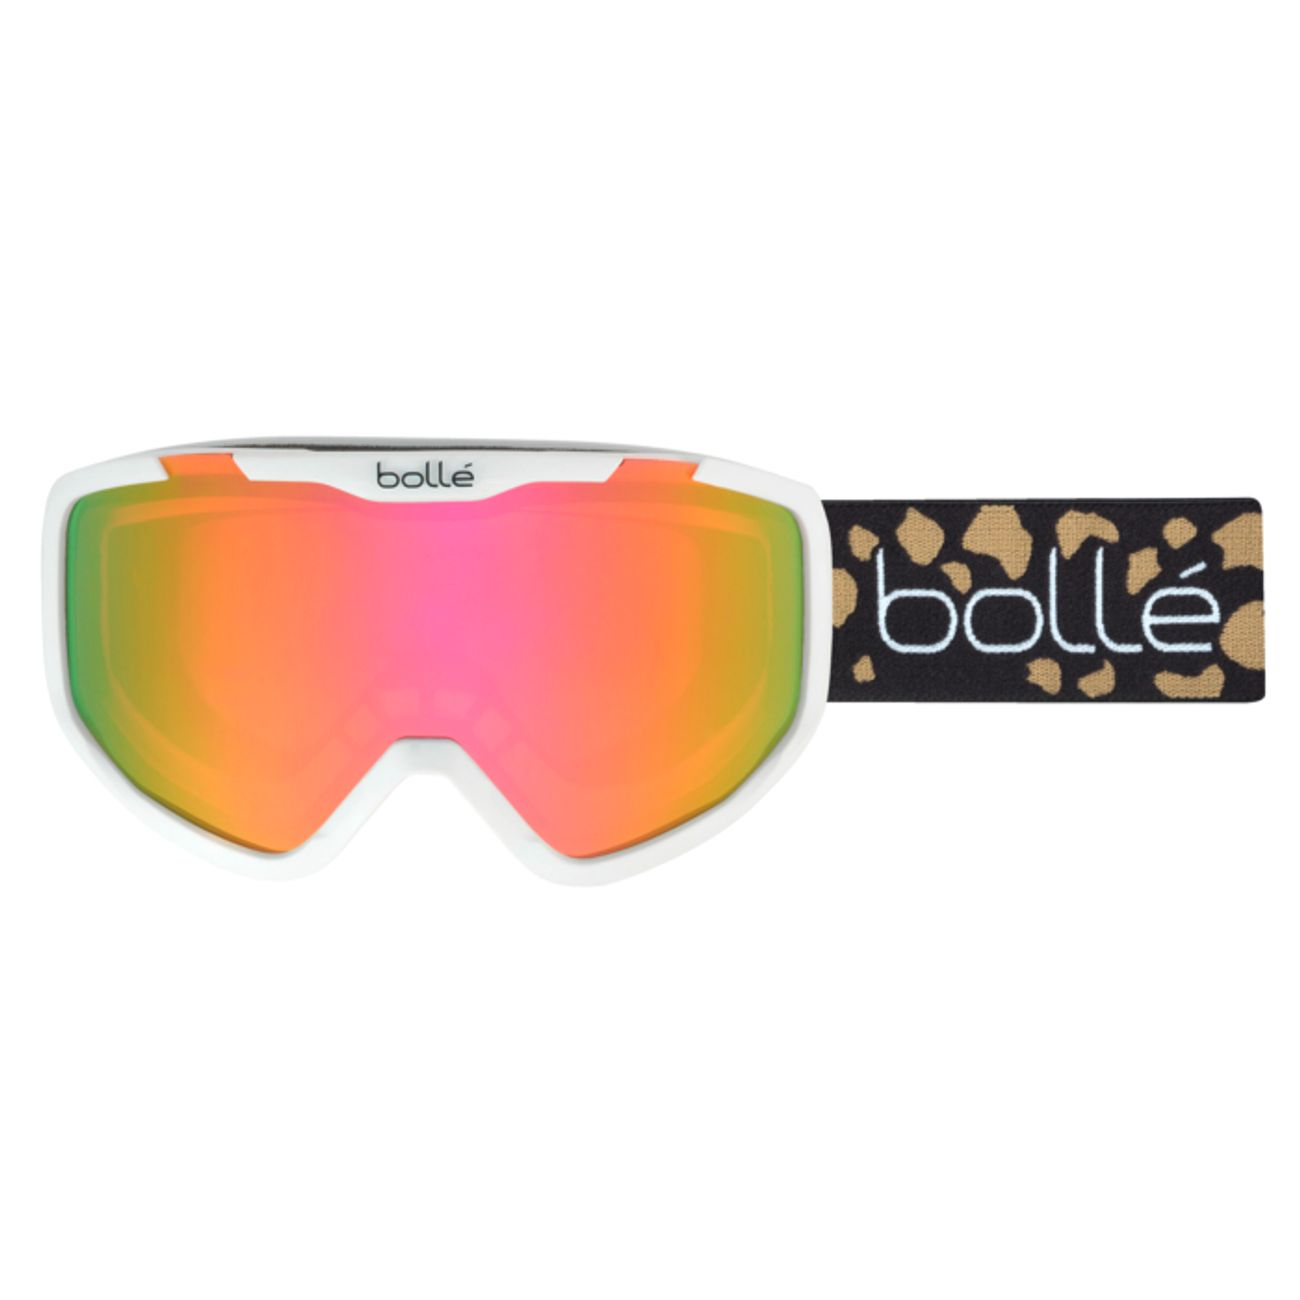 MASQUE   BOLLE ROCKET PLUS